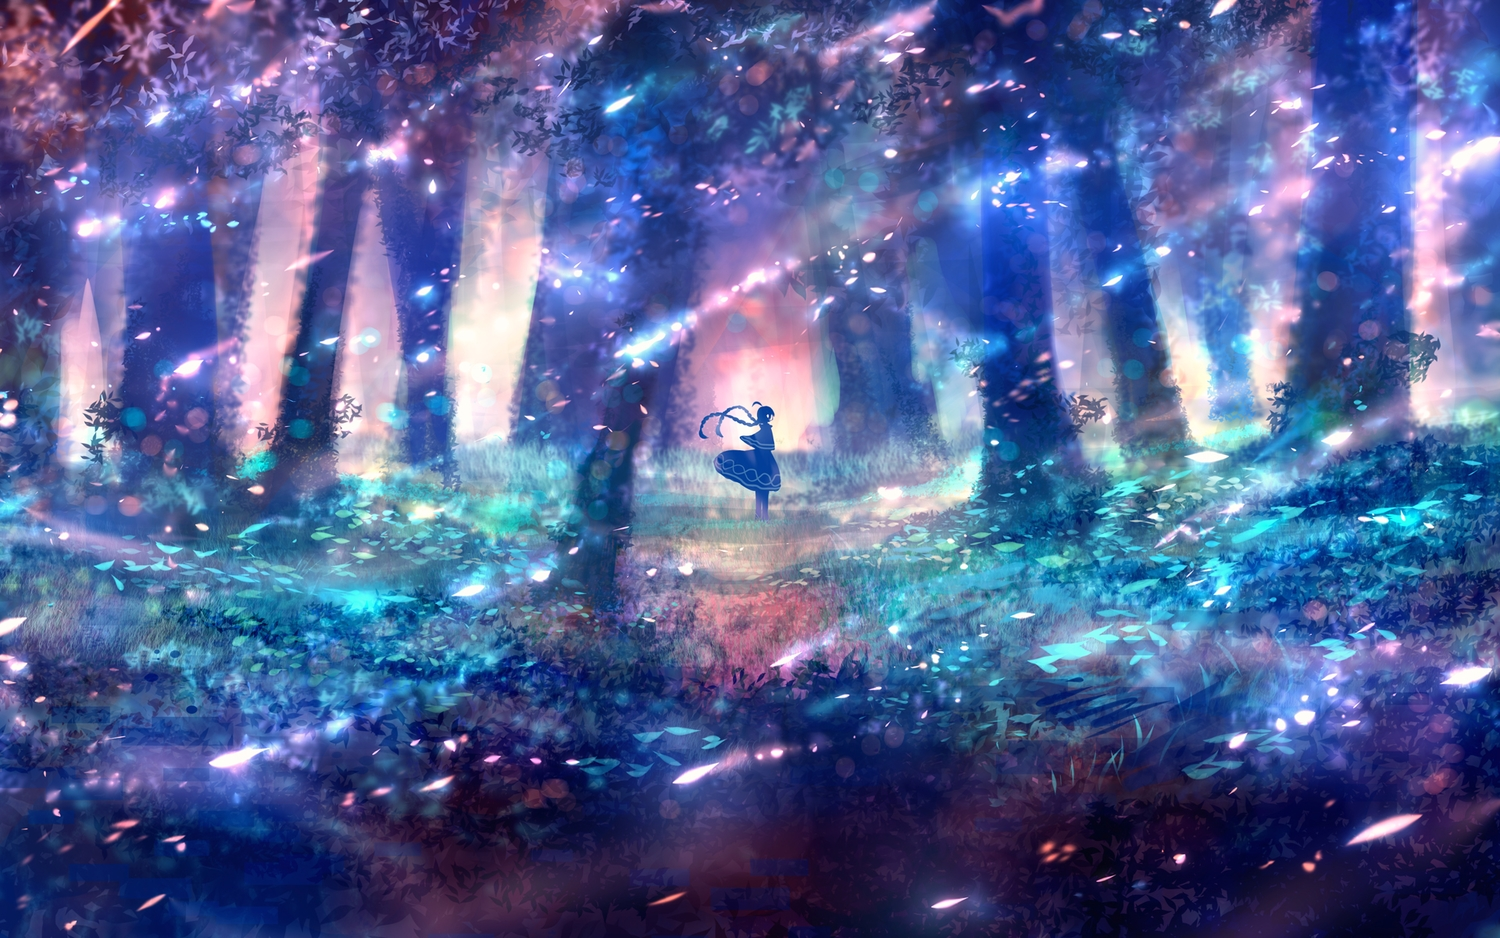 bou_nin braids cape forest long_hair original polychromatic scenic skirt tree twintails